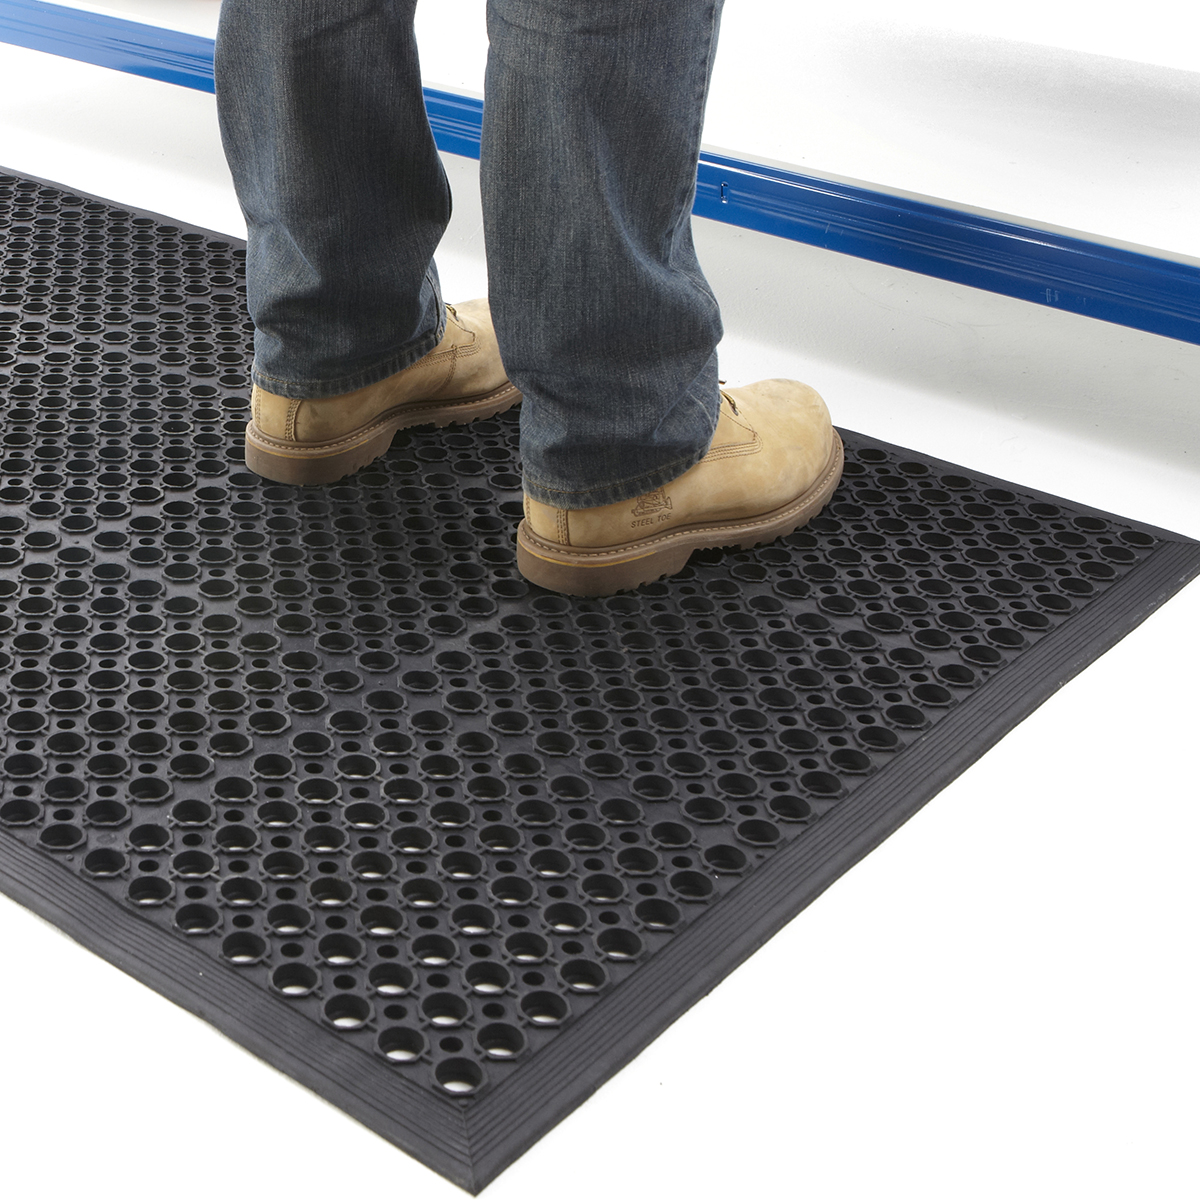 Large Door Mats Outdoor Large Door Mat Outdoor Indoor Entrance Rubber Anti Fatigue